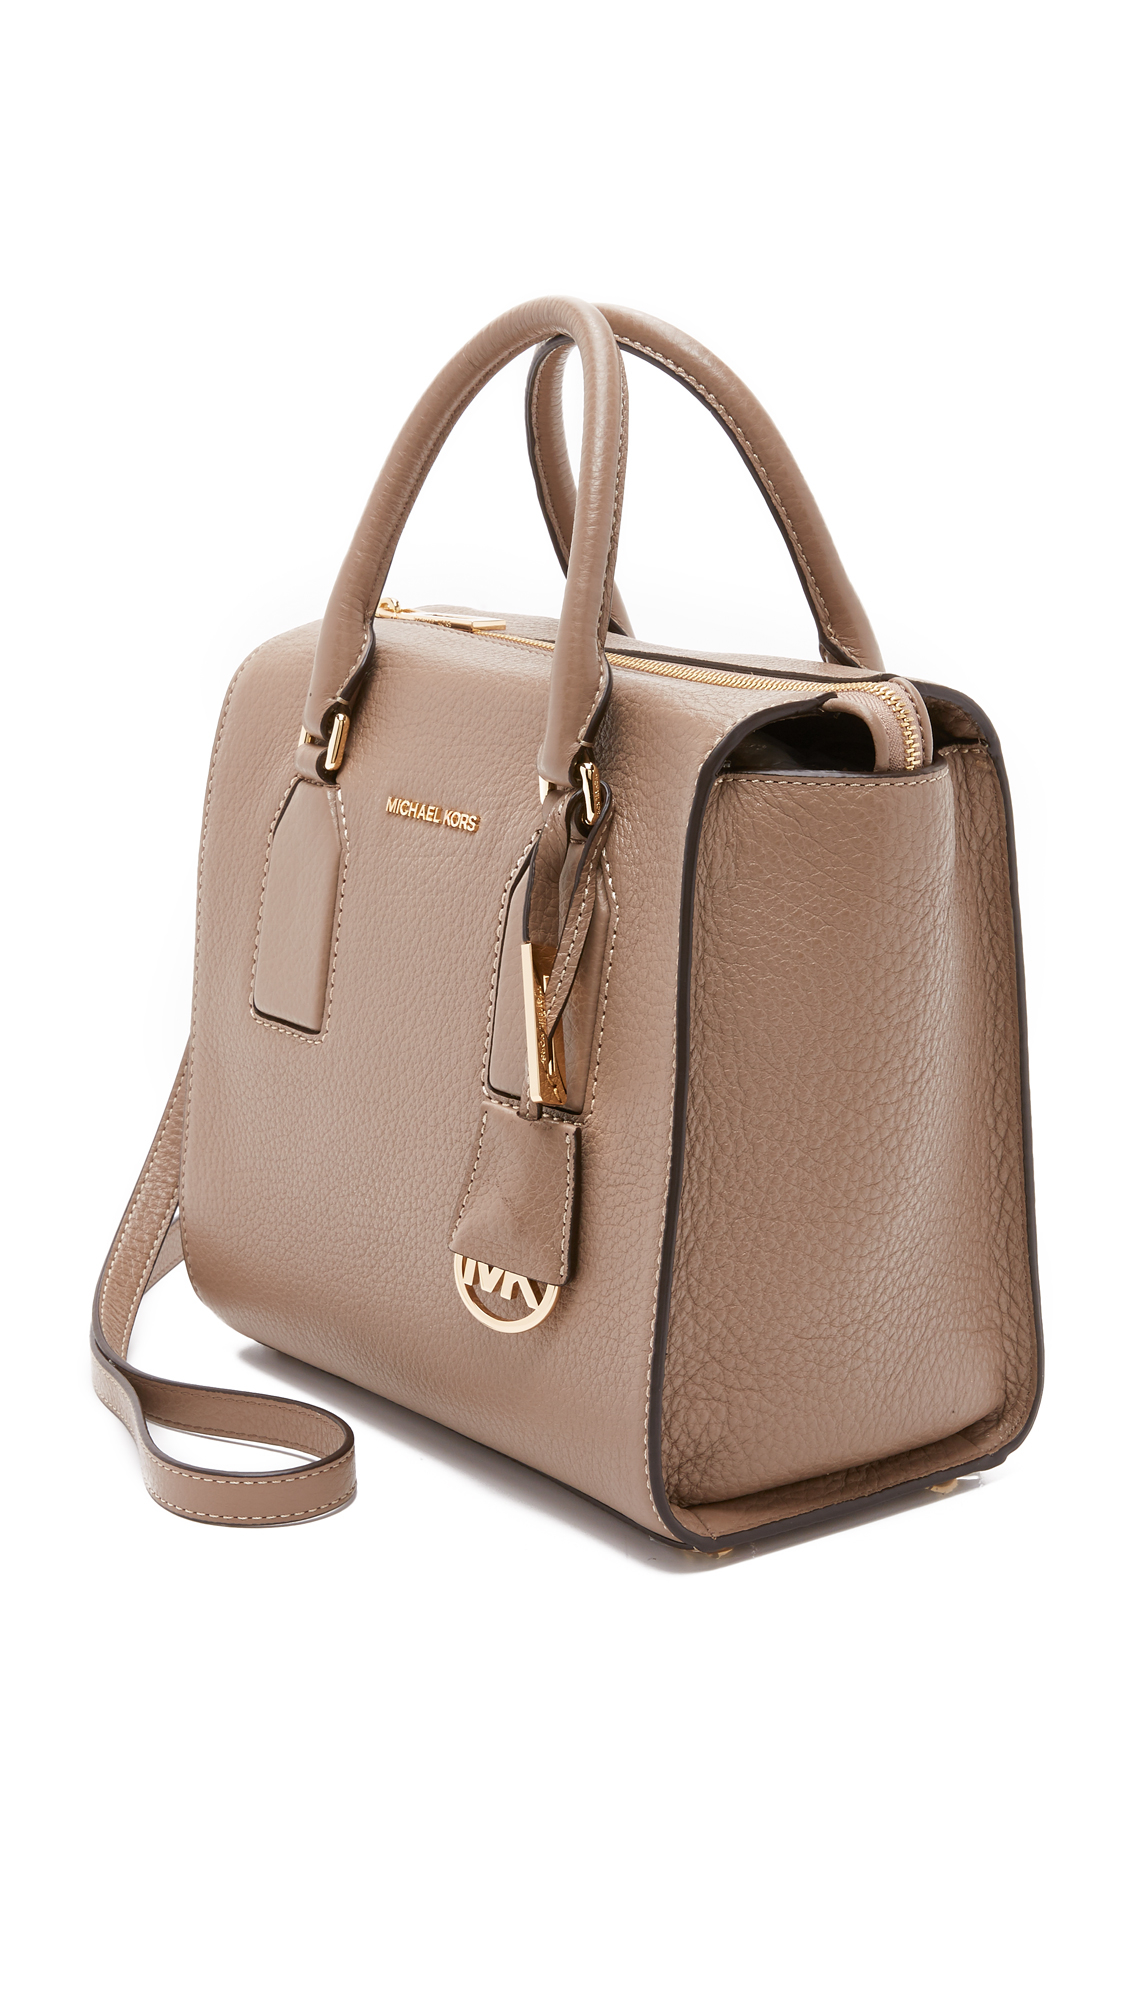 9c58da440dd1 MICHAEL Michael Kors Selby Medium Satchel in Brown - Lyst